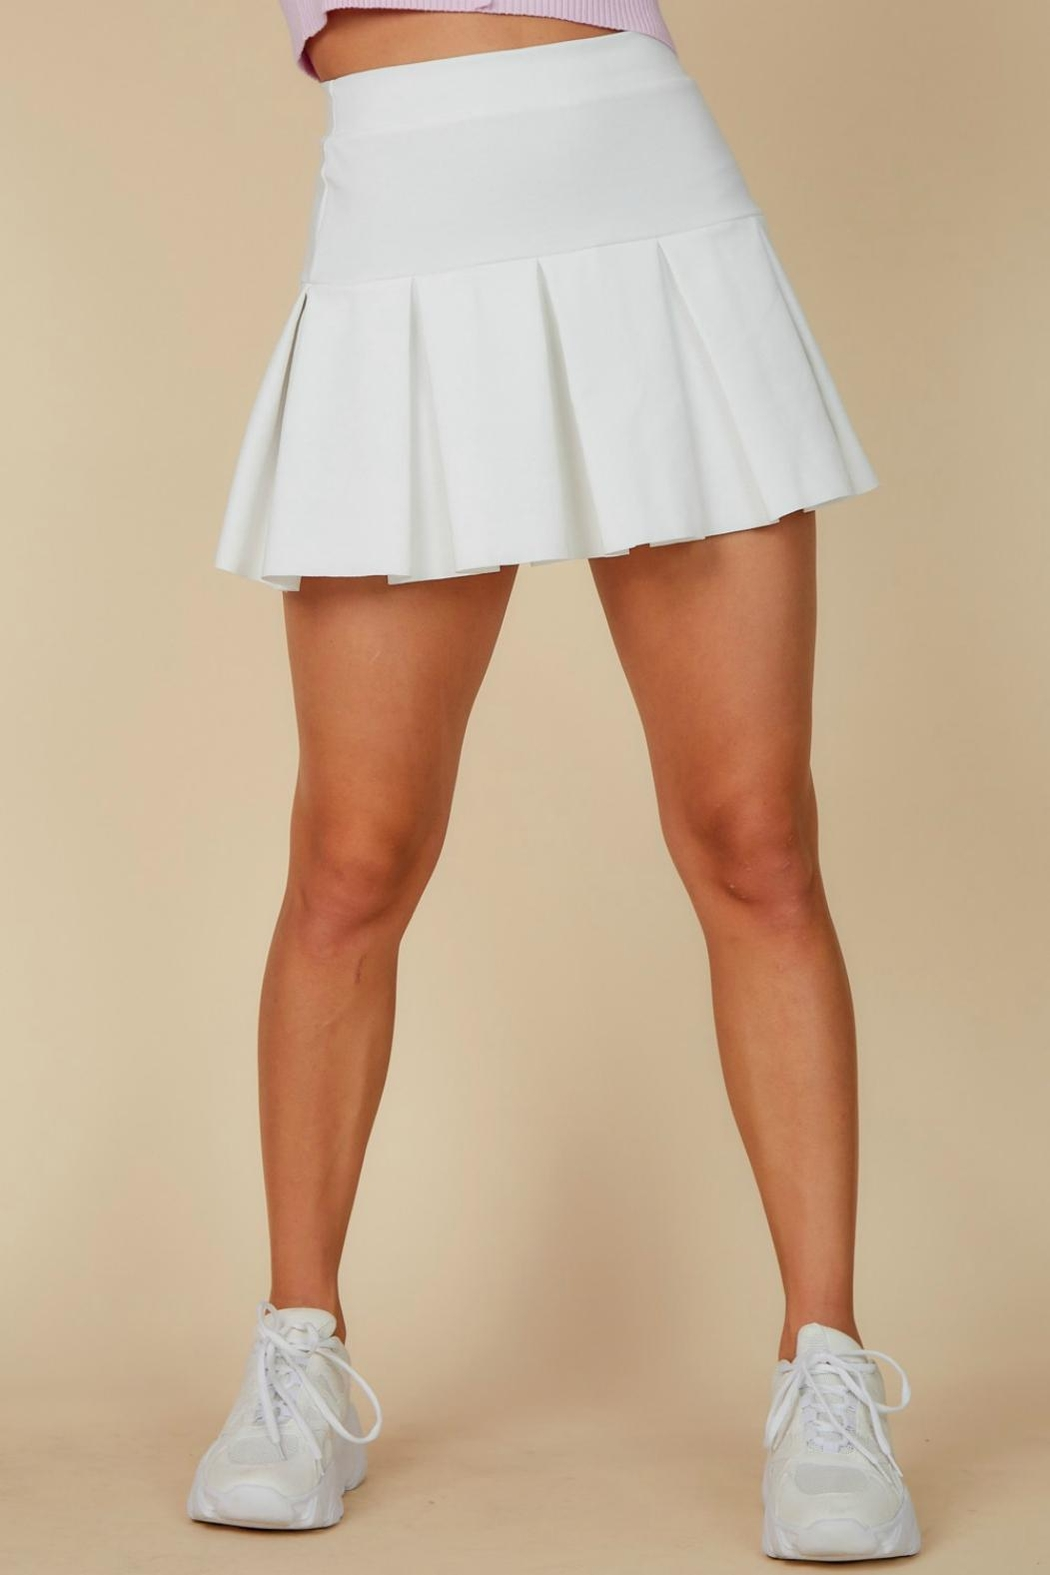 Pretty Little Things Pleated Tennis Skirt - Main Image